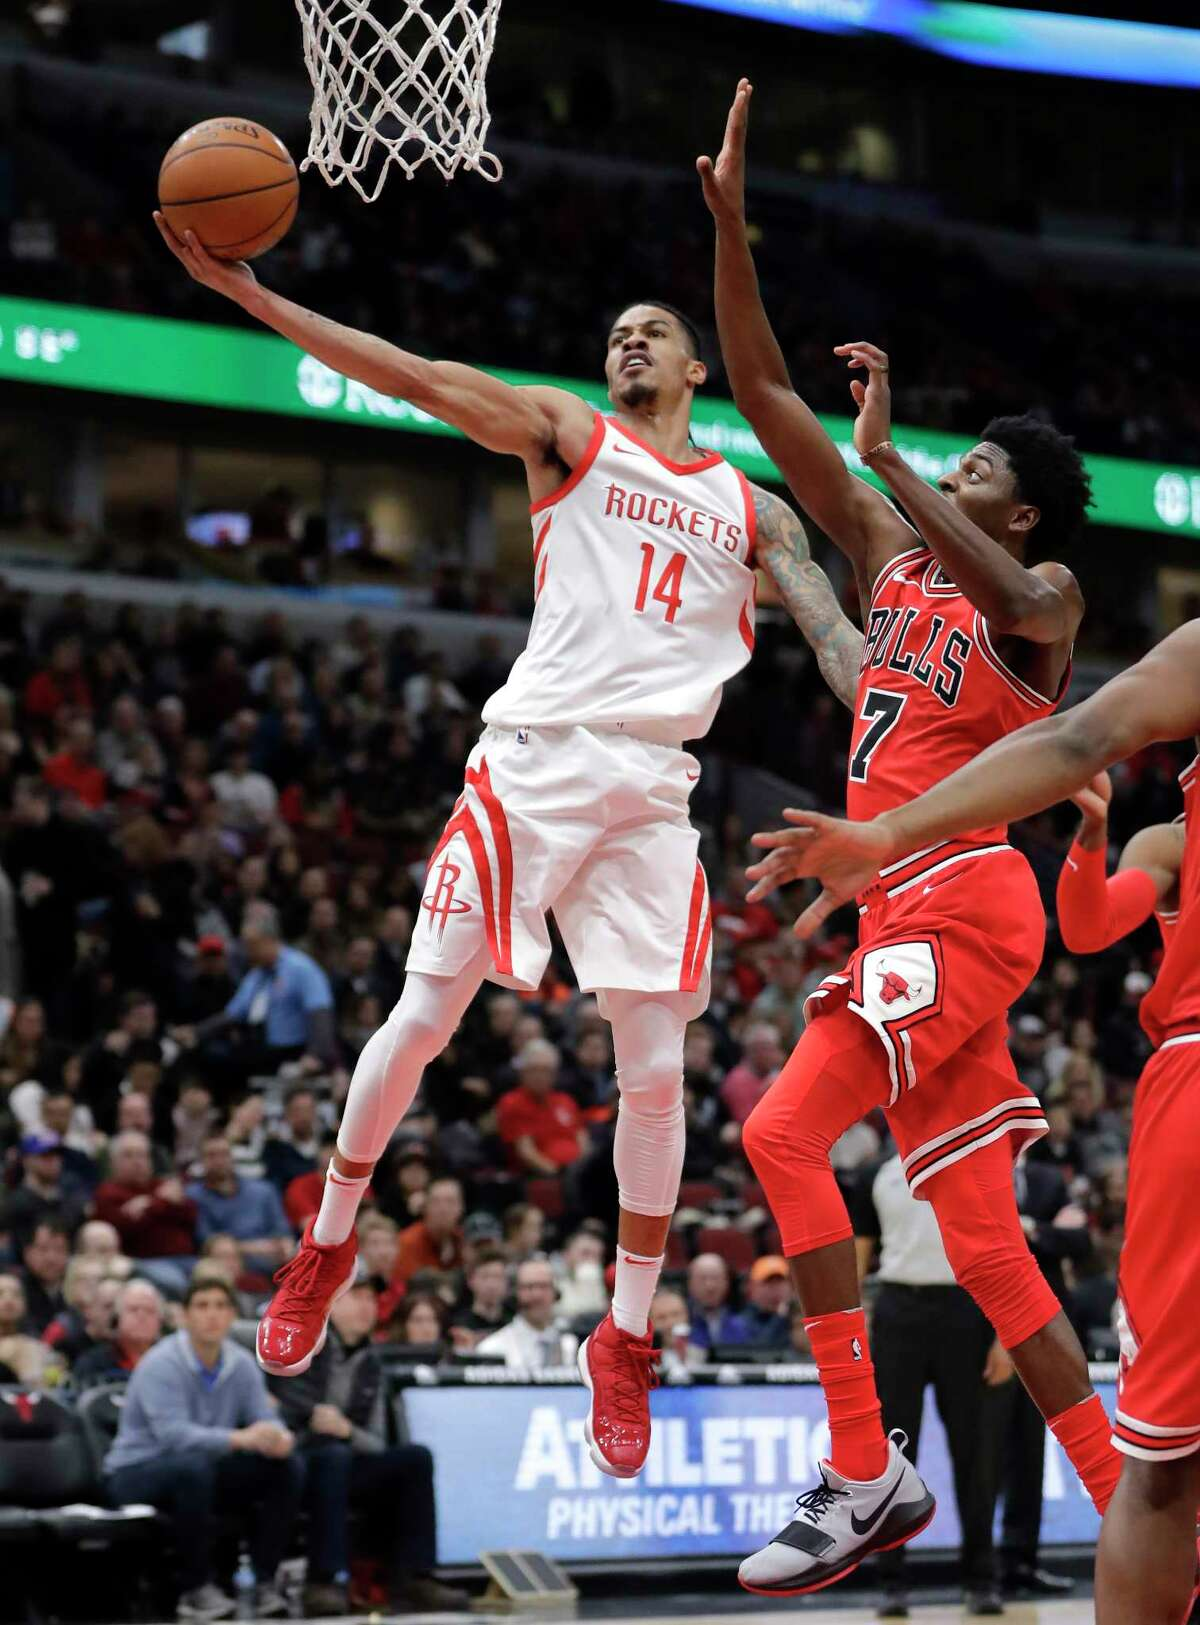 Houston Rockets' Gerald Green (14) scores past Chicago Bulls' Justin Holiday (7) during the first half of an NBA basketball game Monday, Jan. 8, 2018, in Chicago. (AP Photo/Charles Rex Arbogast)